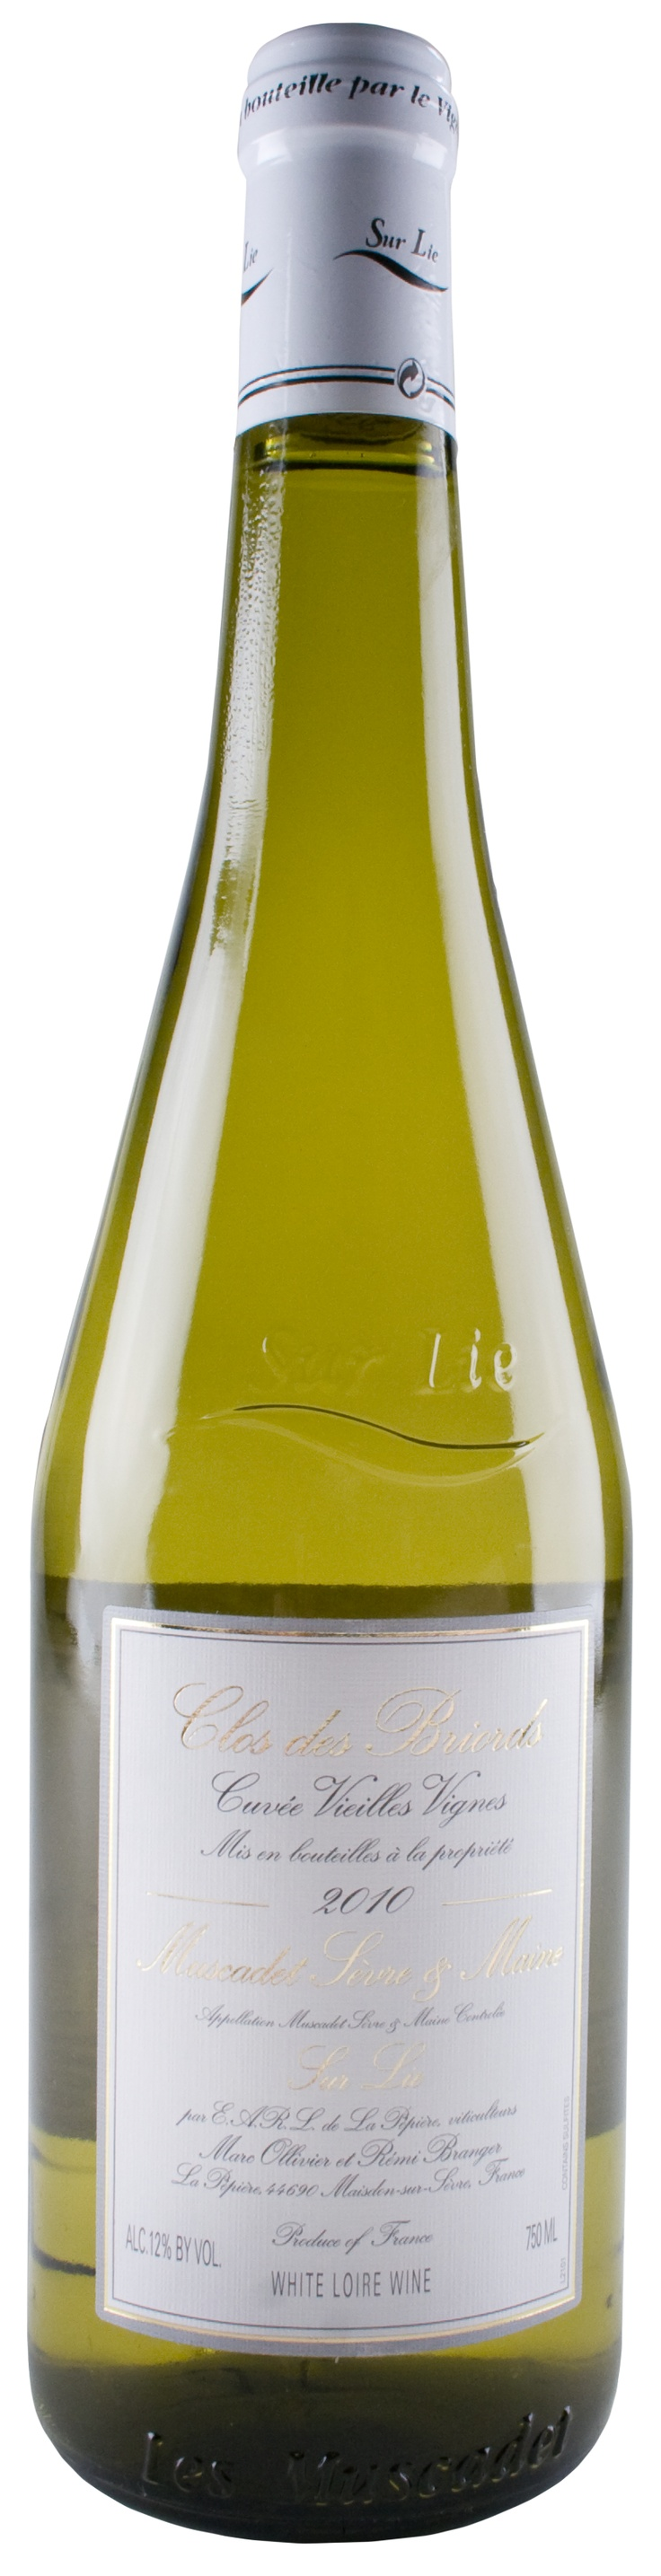 This is the best $13 bottle of white wine.